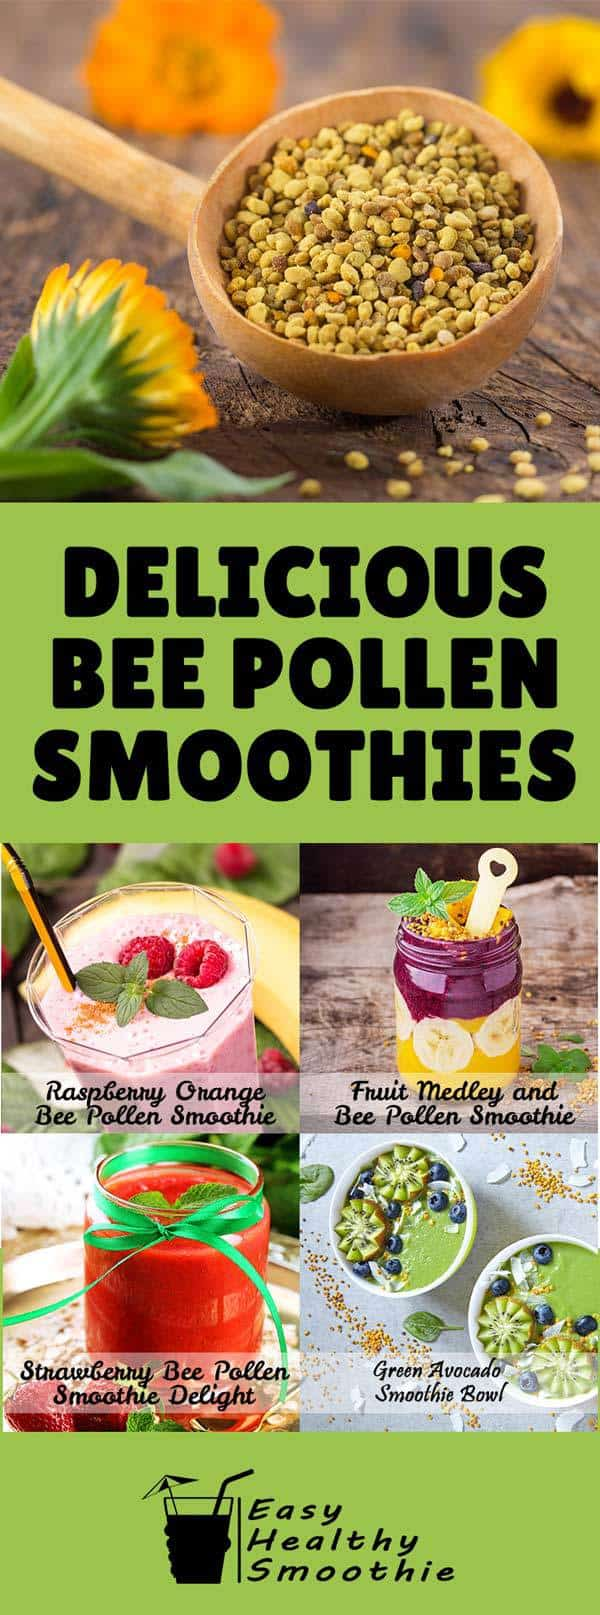 bee pollen smoothies pin